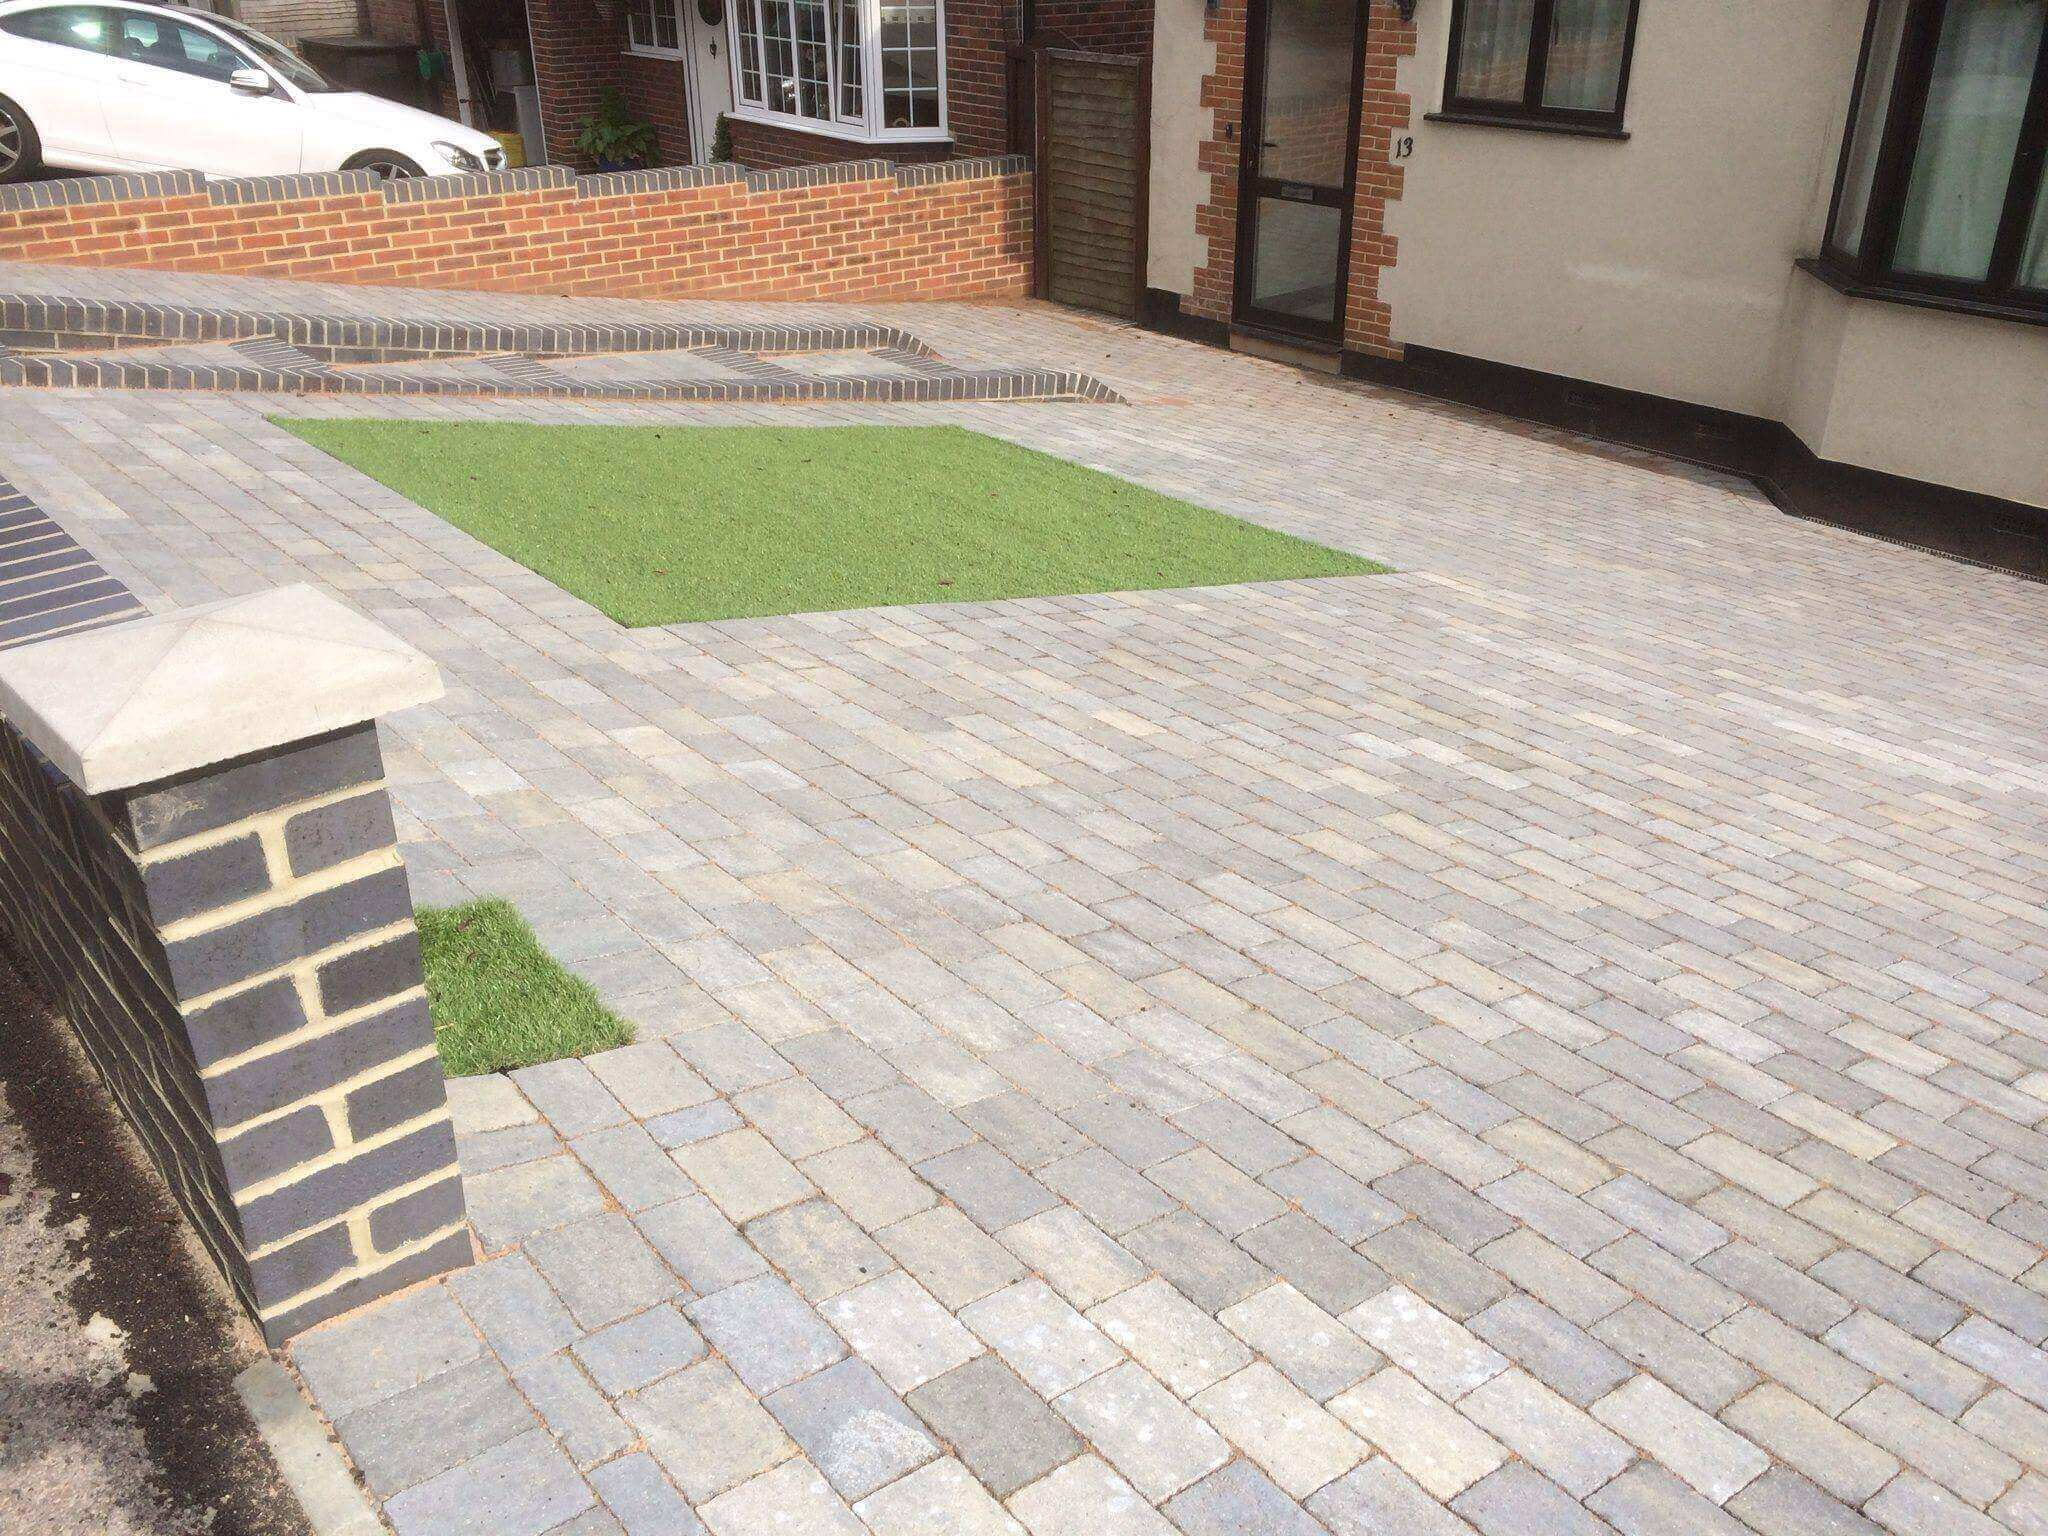 Driveway Design and Installation Company Kingston upon Thames KT1